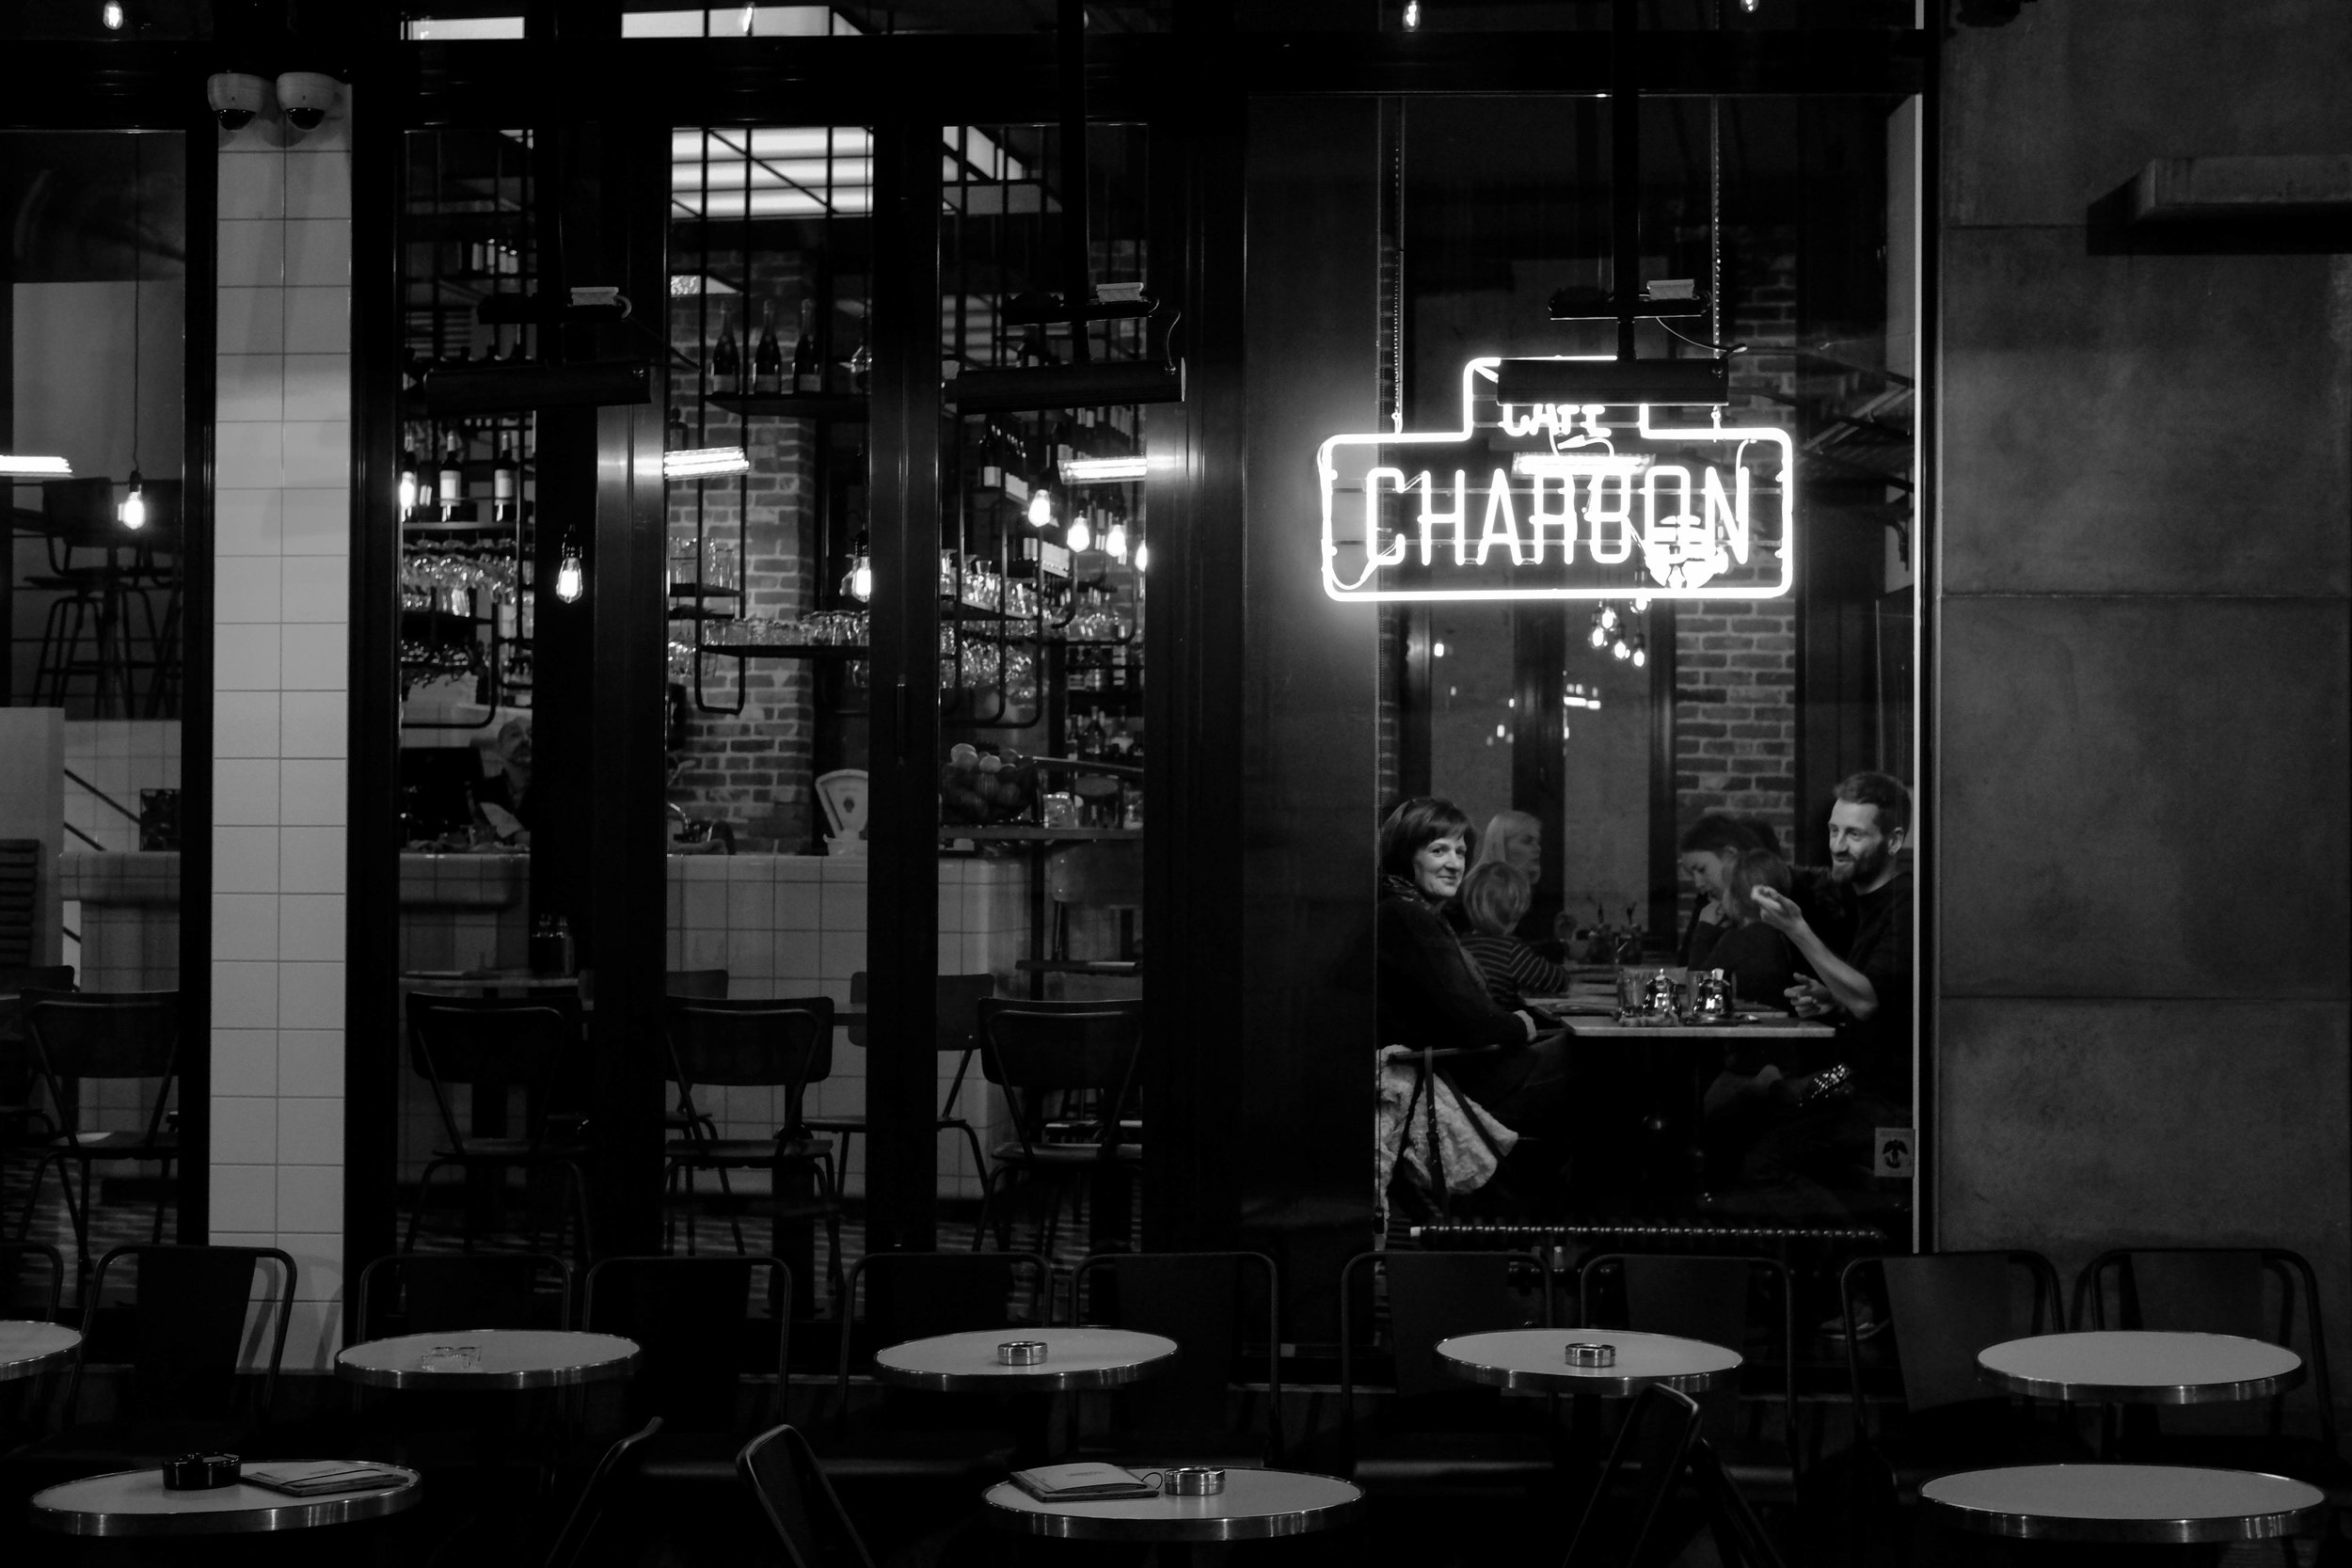 "<p style=""font-family:brandon-grotesque;font-weight:500; font-size:11px; text-center:left; color:light grey;letter-spacing: 1px"">MARCH 2, 2017 • CAFÉ CHARBON • � Brussels, Belgium</p>"